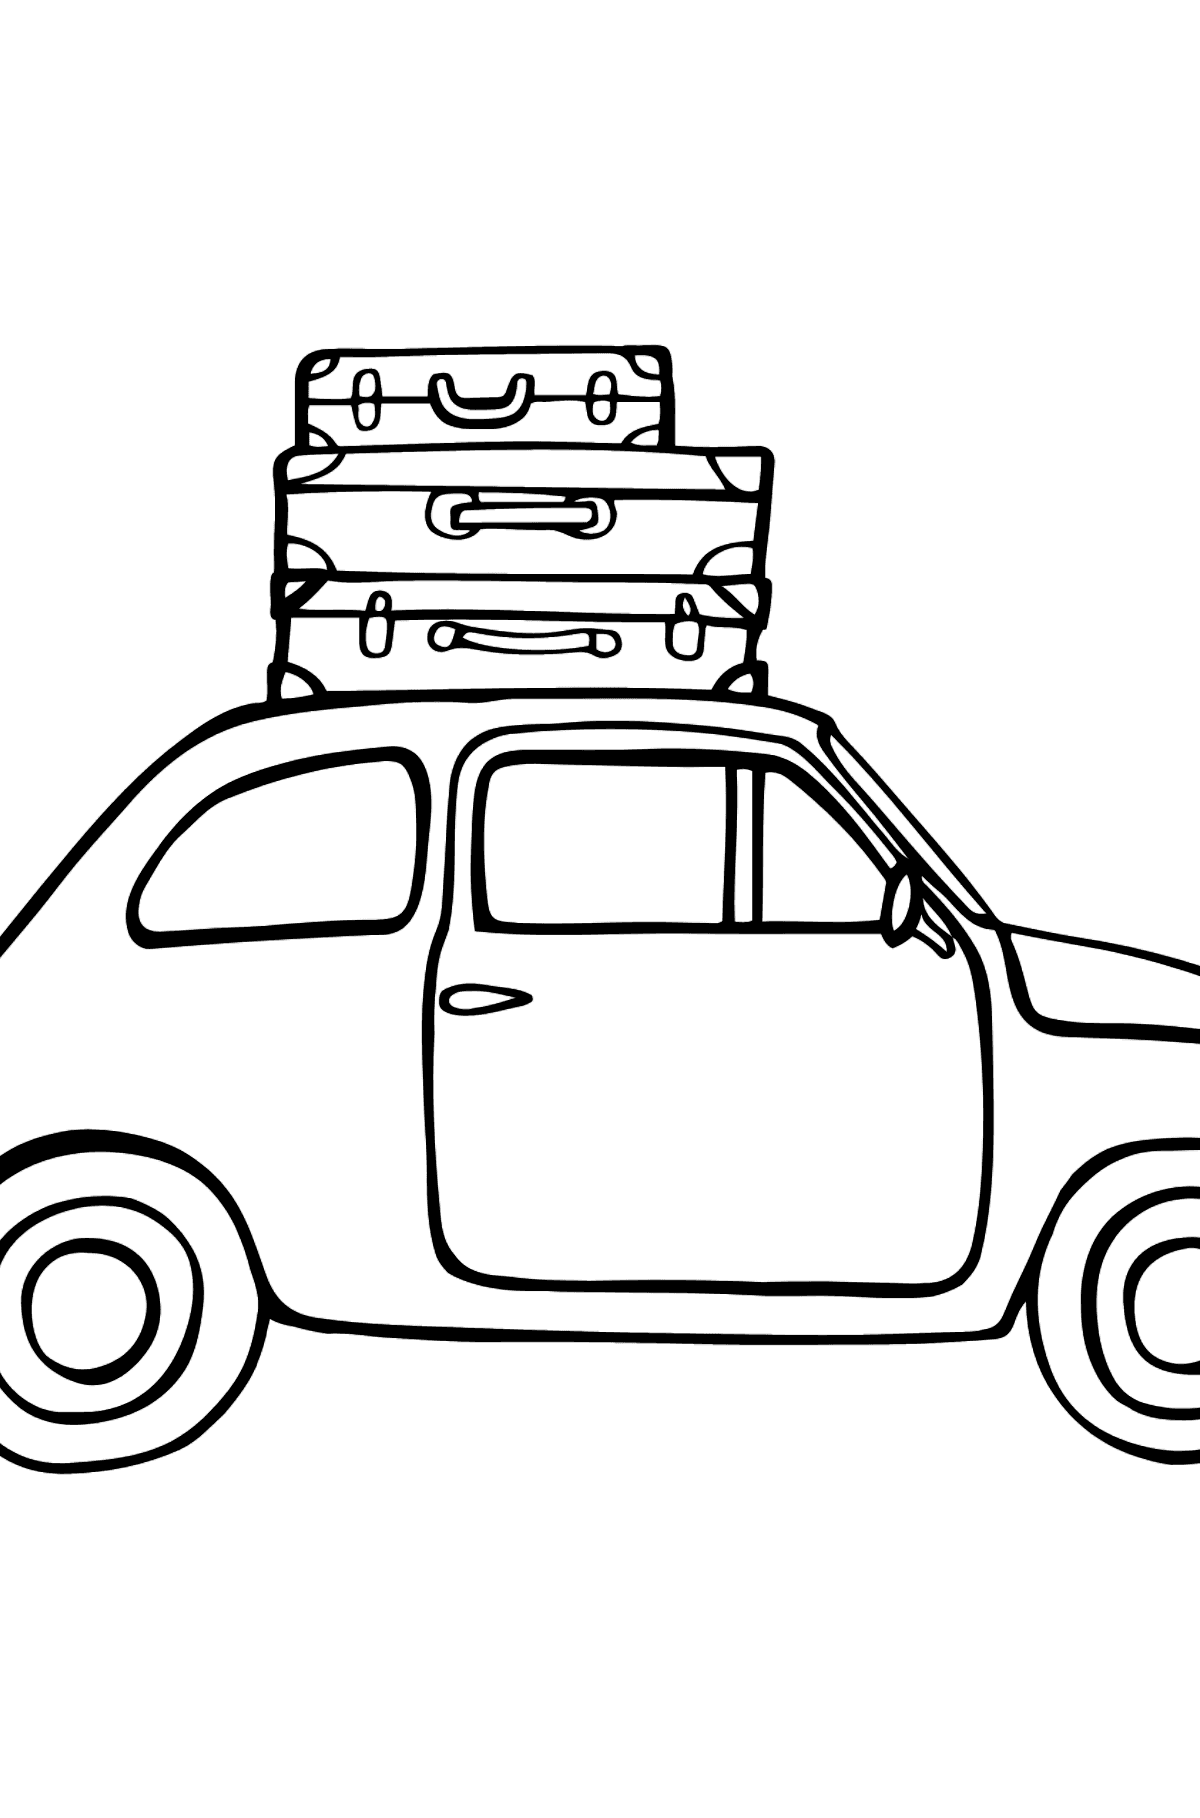 Fiat 600 car coloring page - Coloring Pages for Kids